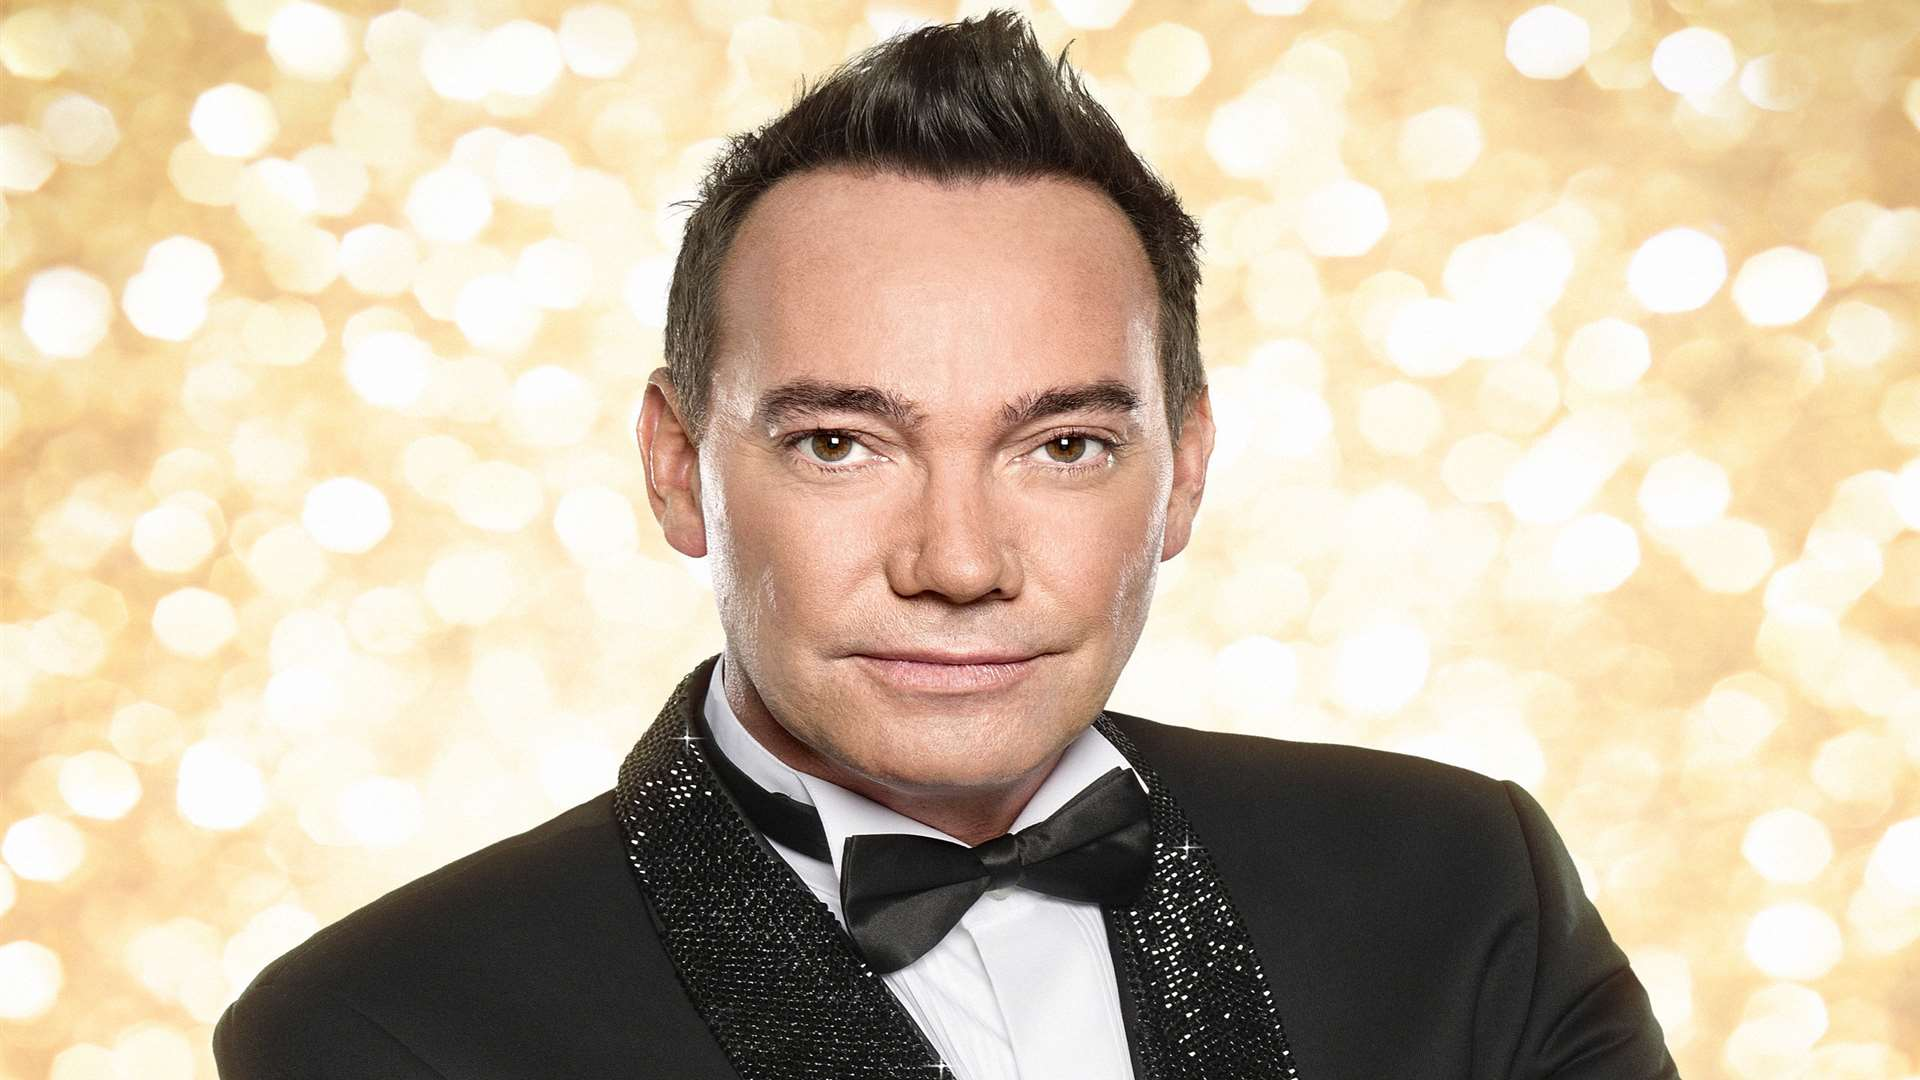 Craig Revel Horwood is the judge all the contestants fear in Strictly